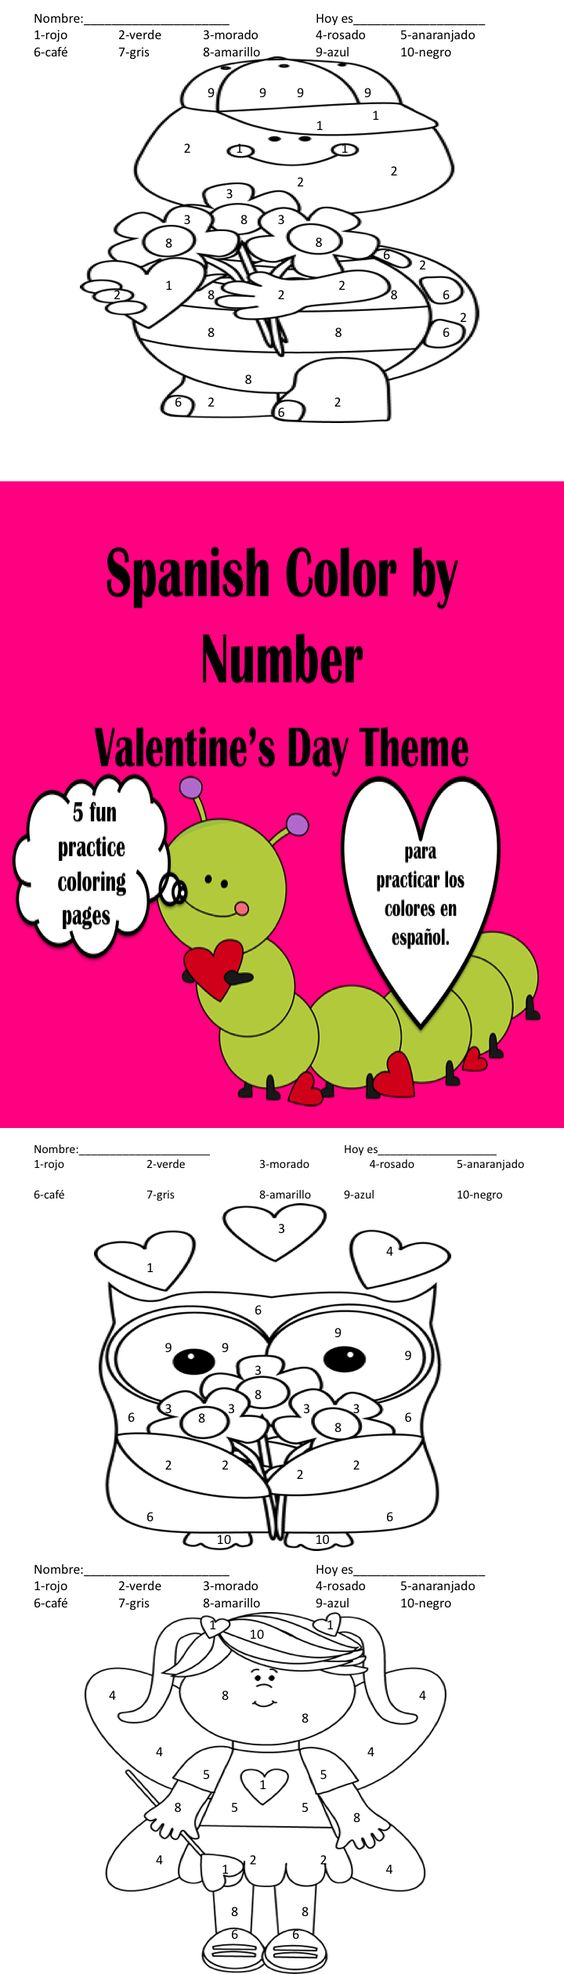 valentine coloring pages spanish - photo #7